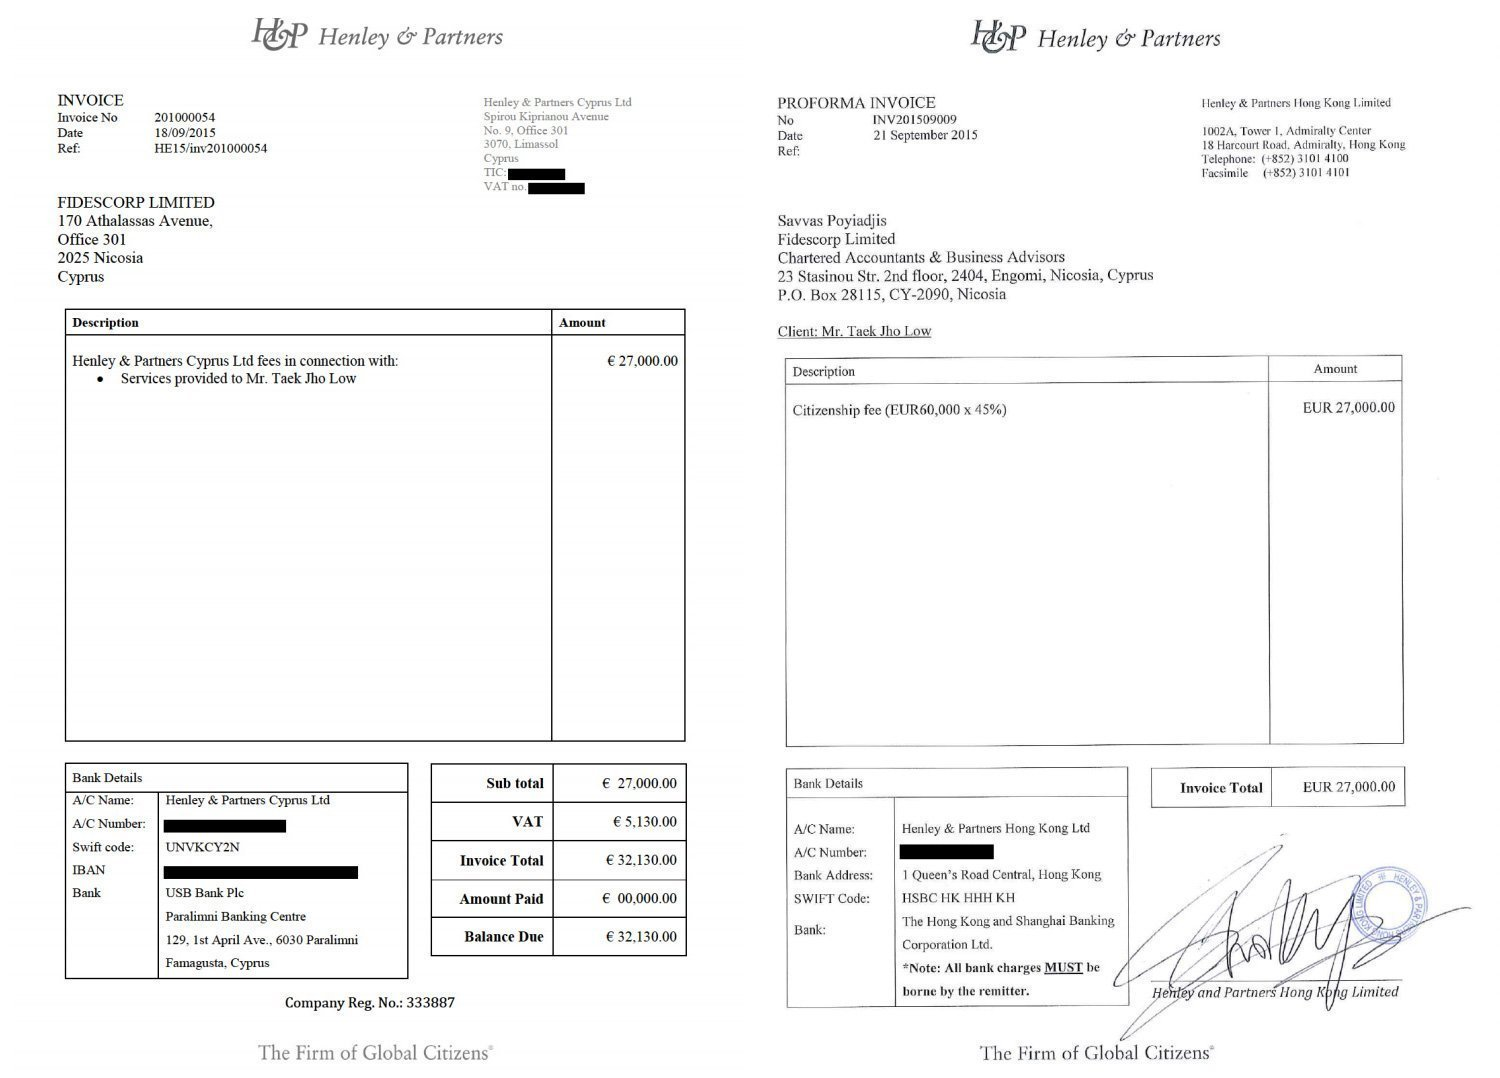 Invoices Issued by Henleys Subsidiaries2